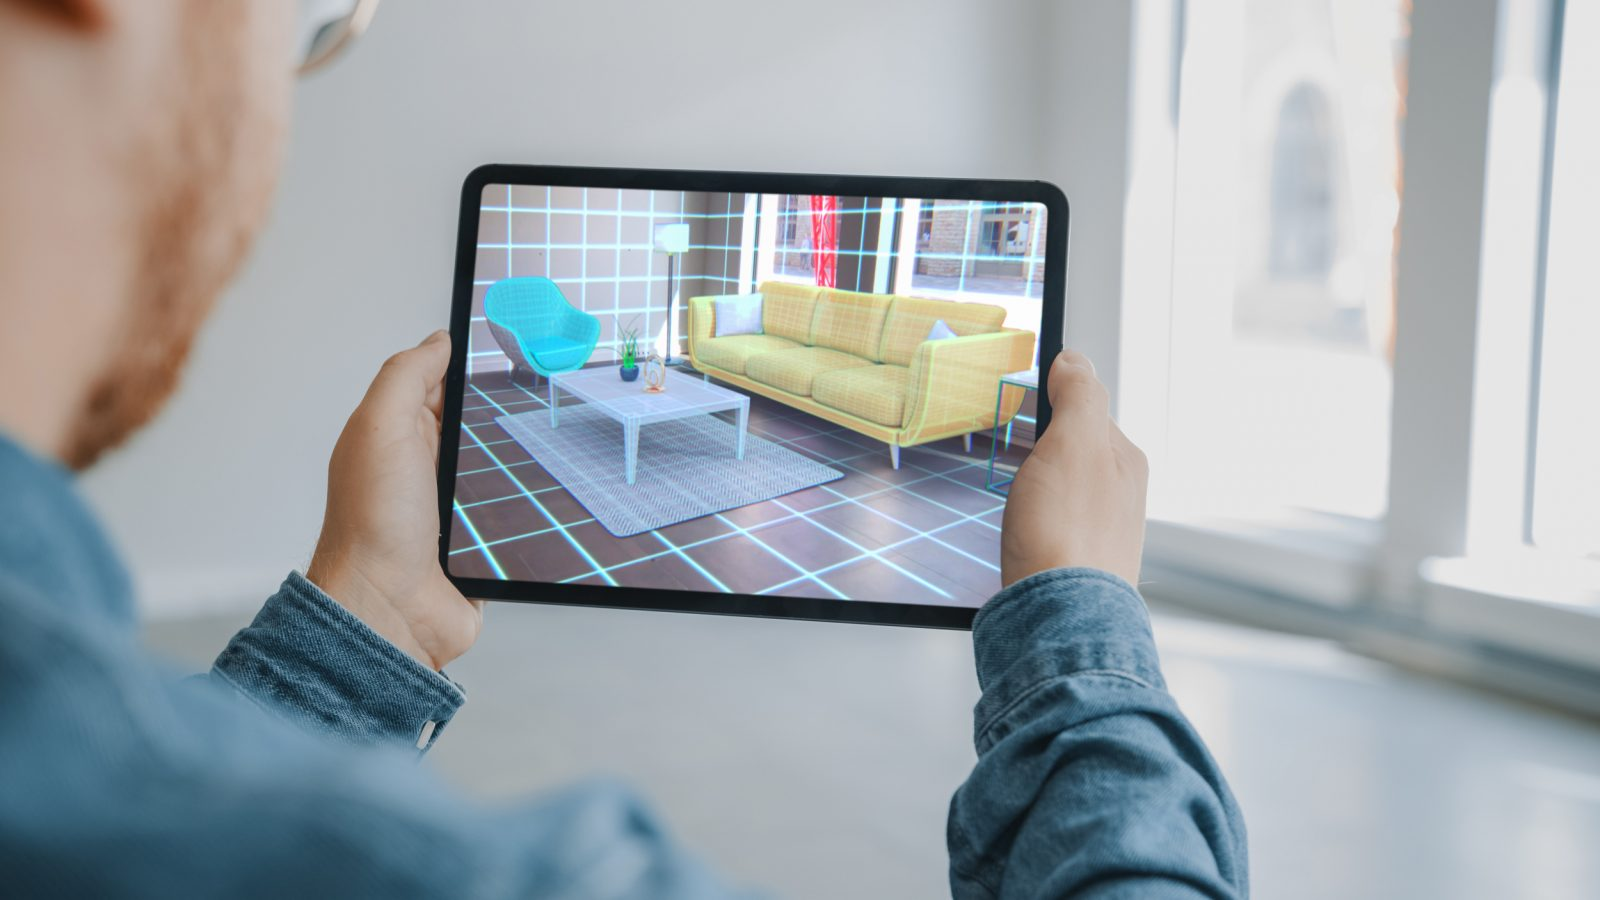 Examples of AR businesses